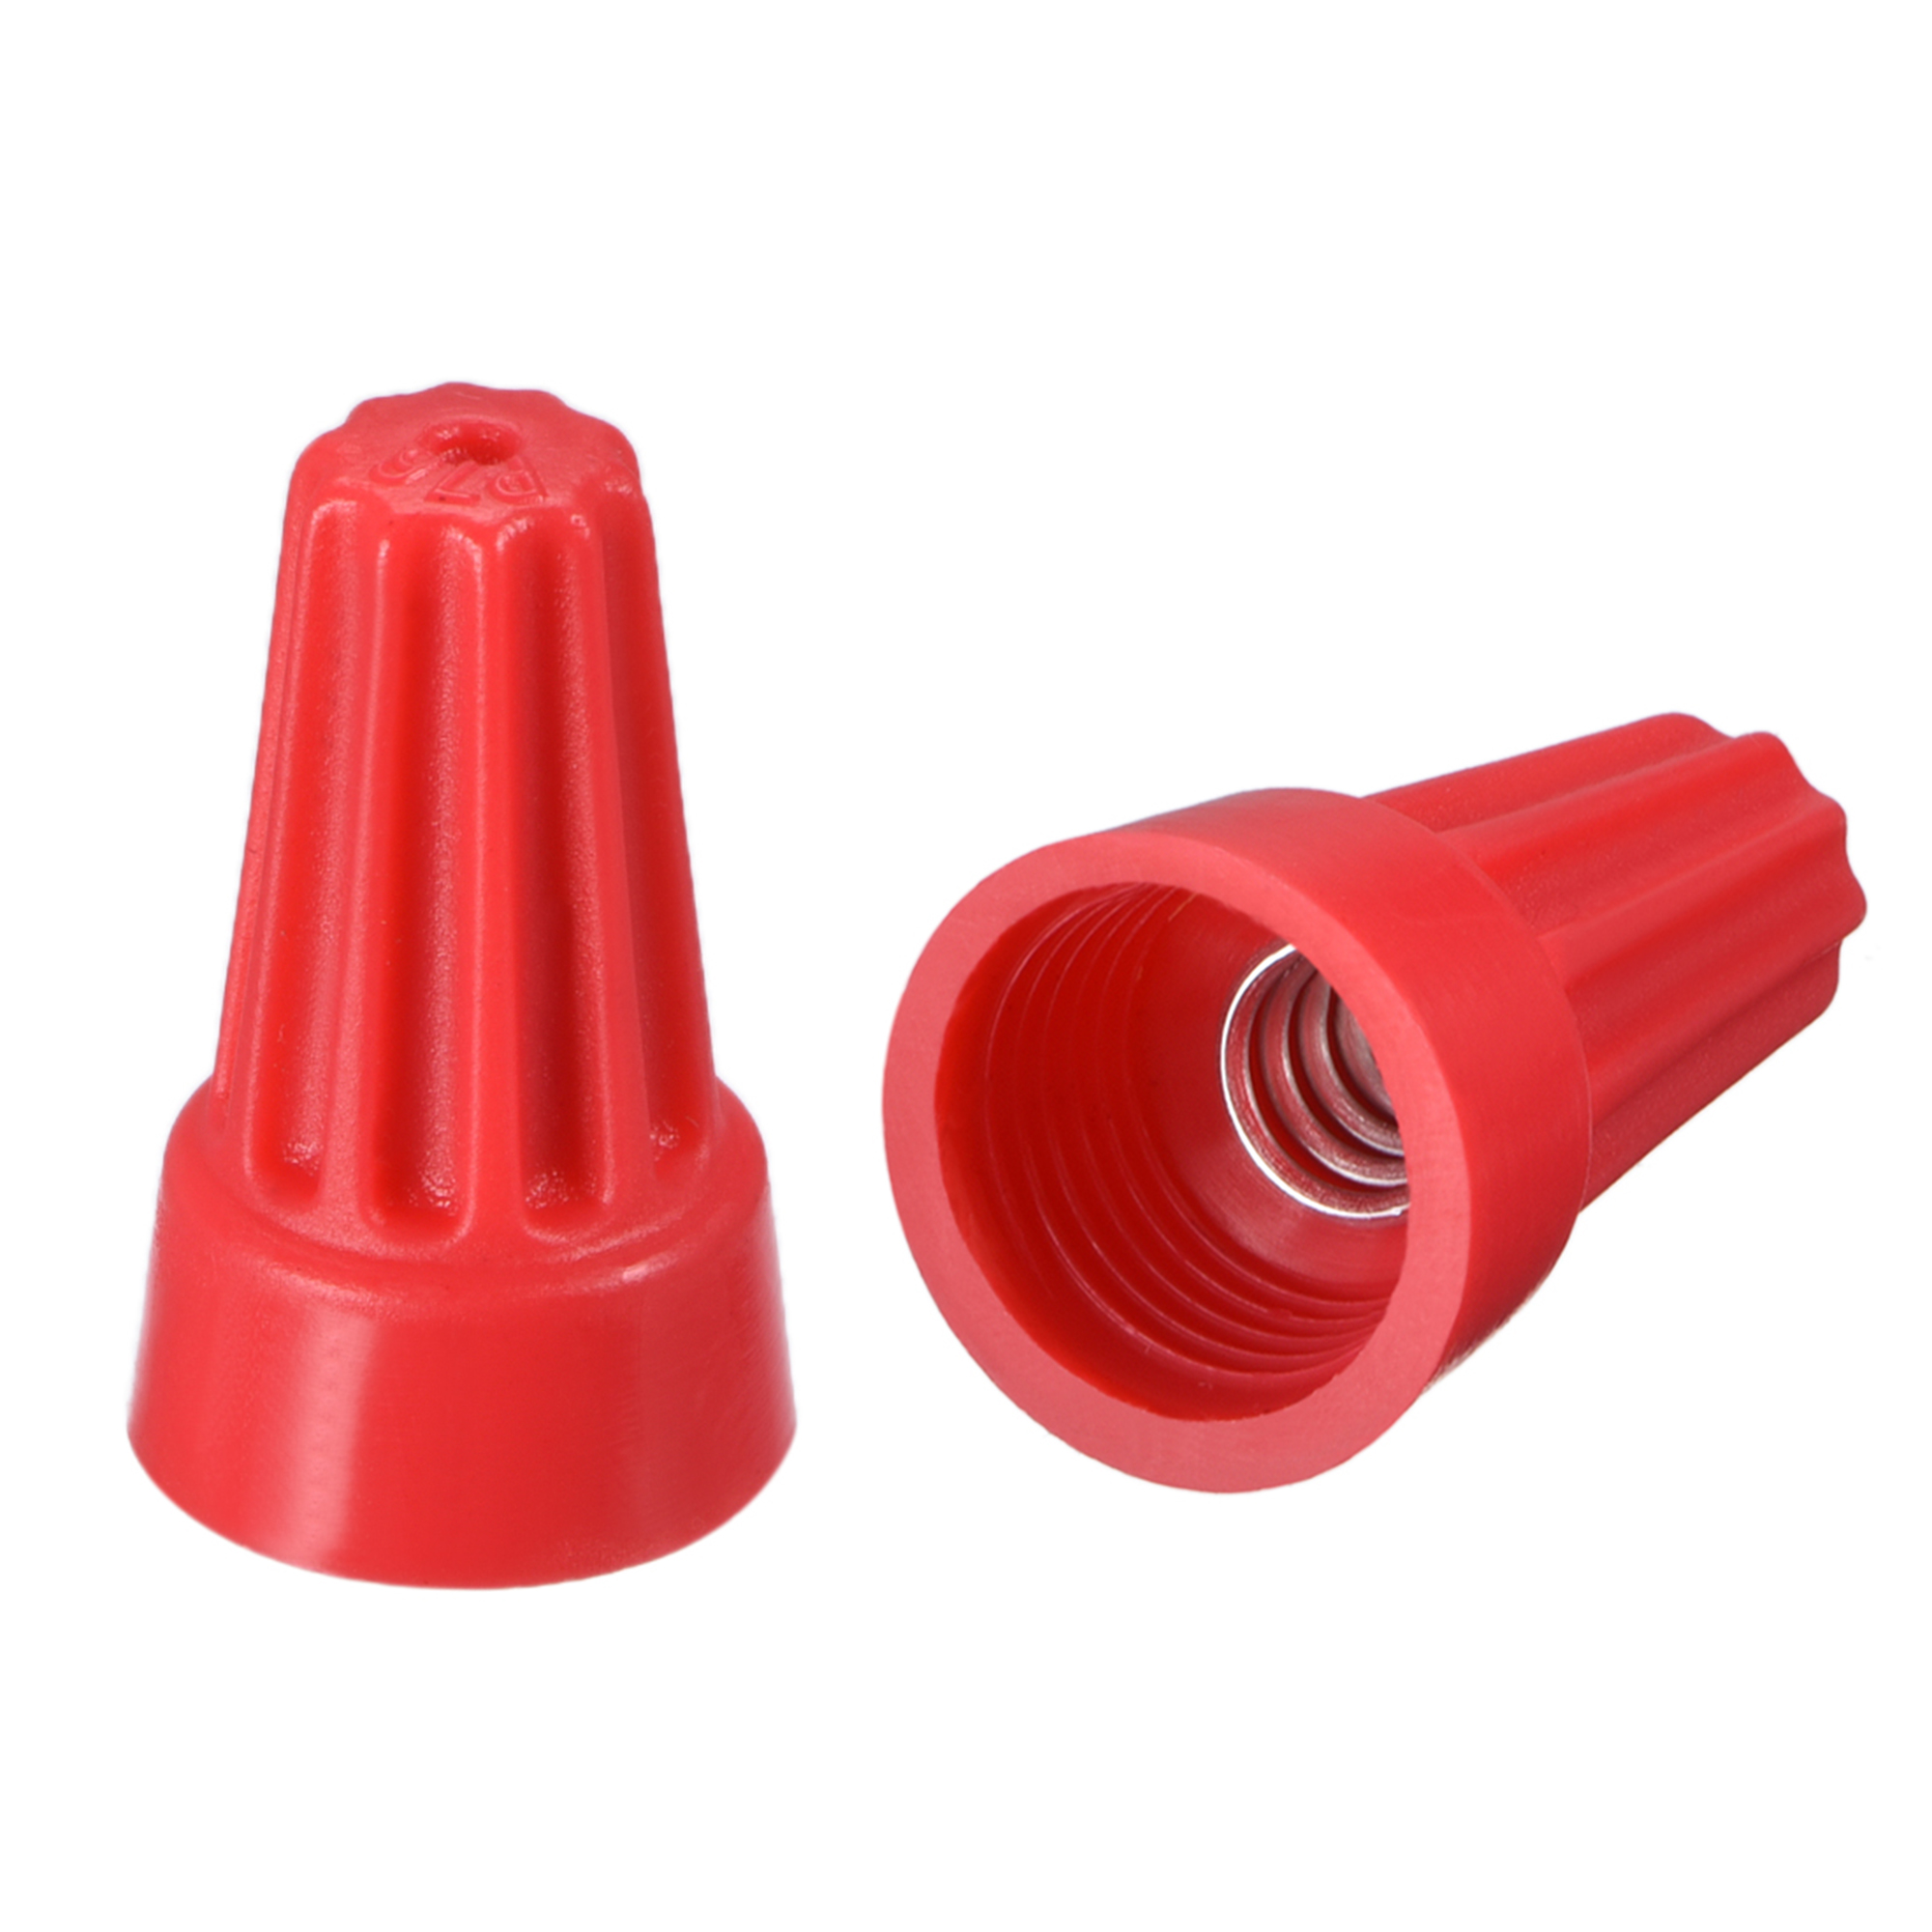 medium resolution of wire nuts electrical connectors twist nut caps screw terminals red wire nut connections close up wire nut cover